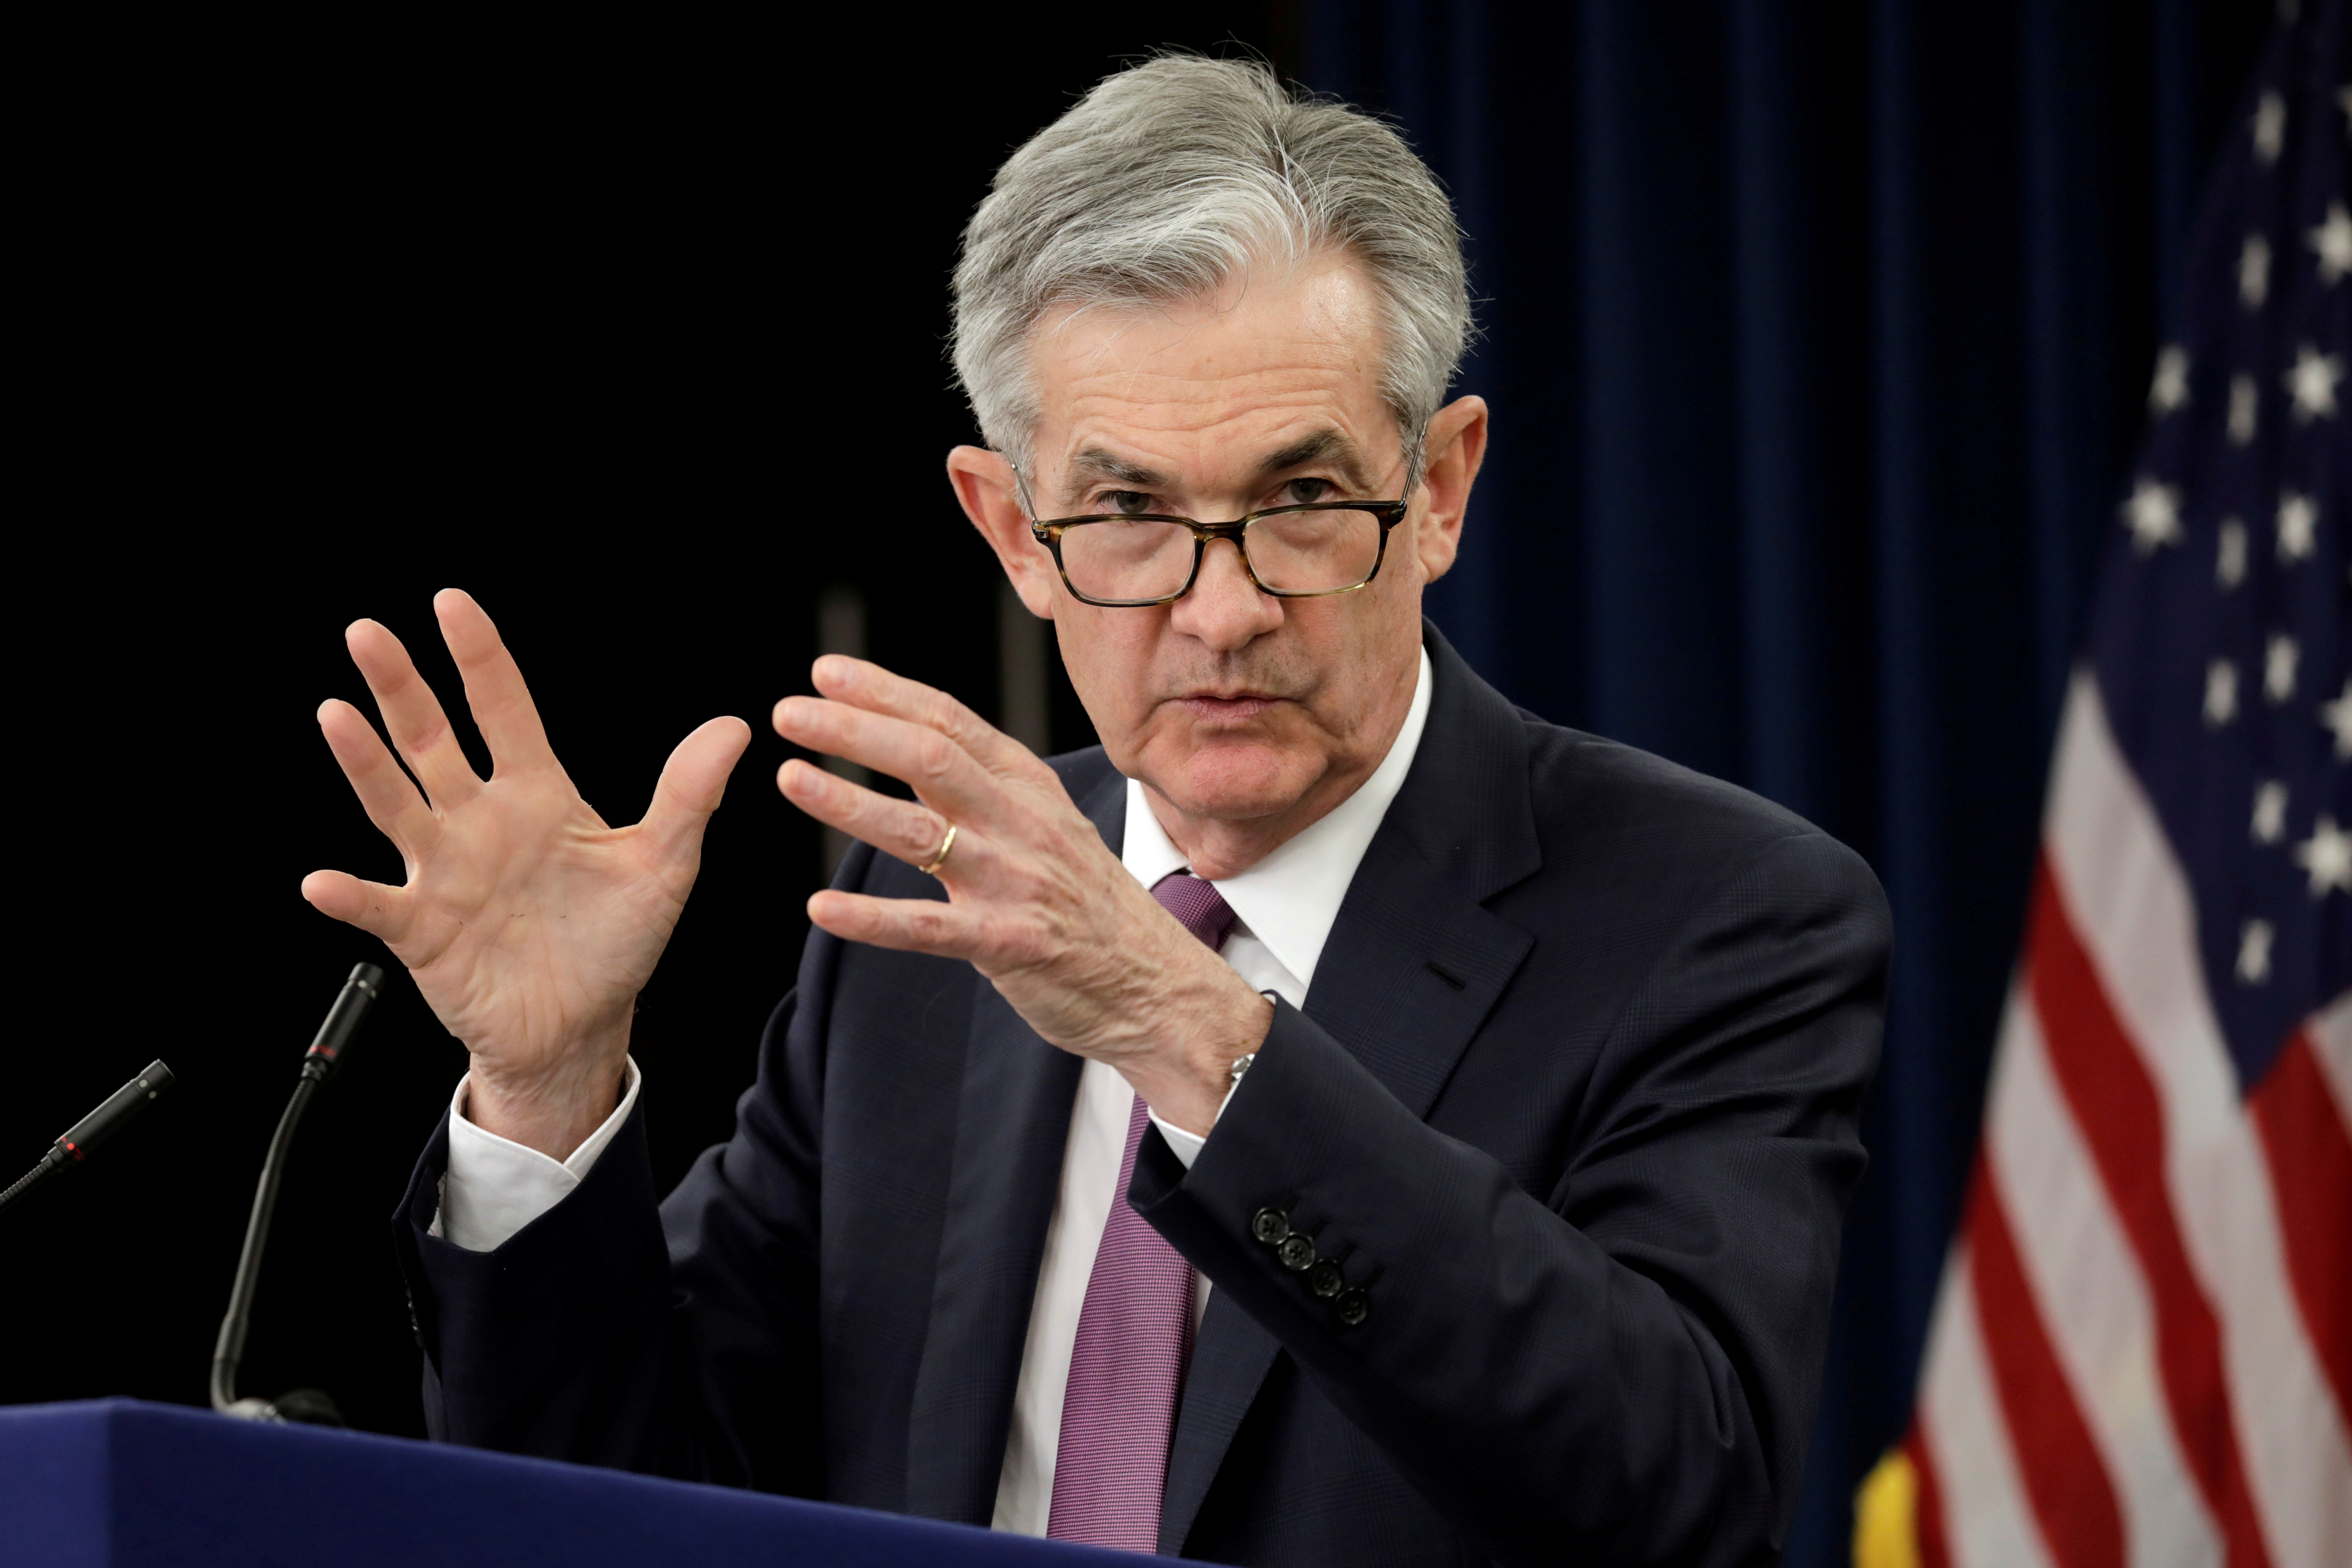 la-fed-reagira-de-facon-adaptee-aux-divers-risques-dit-powell